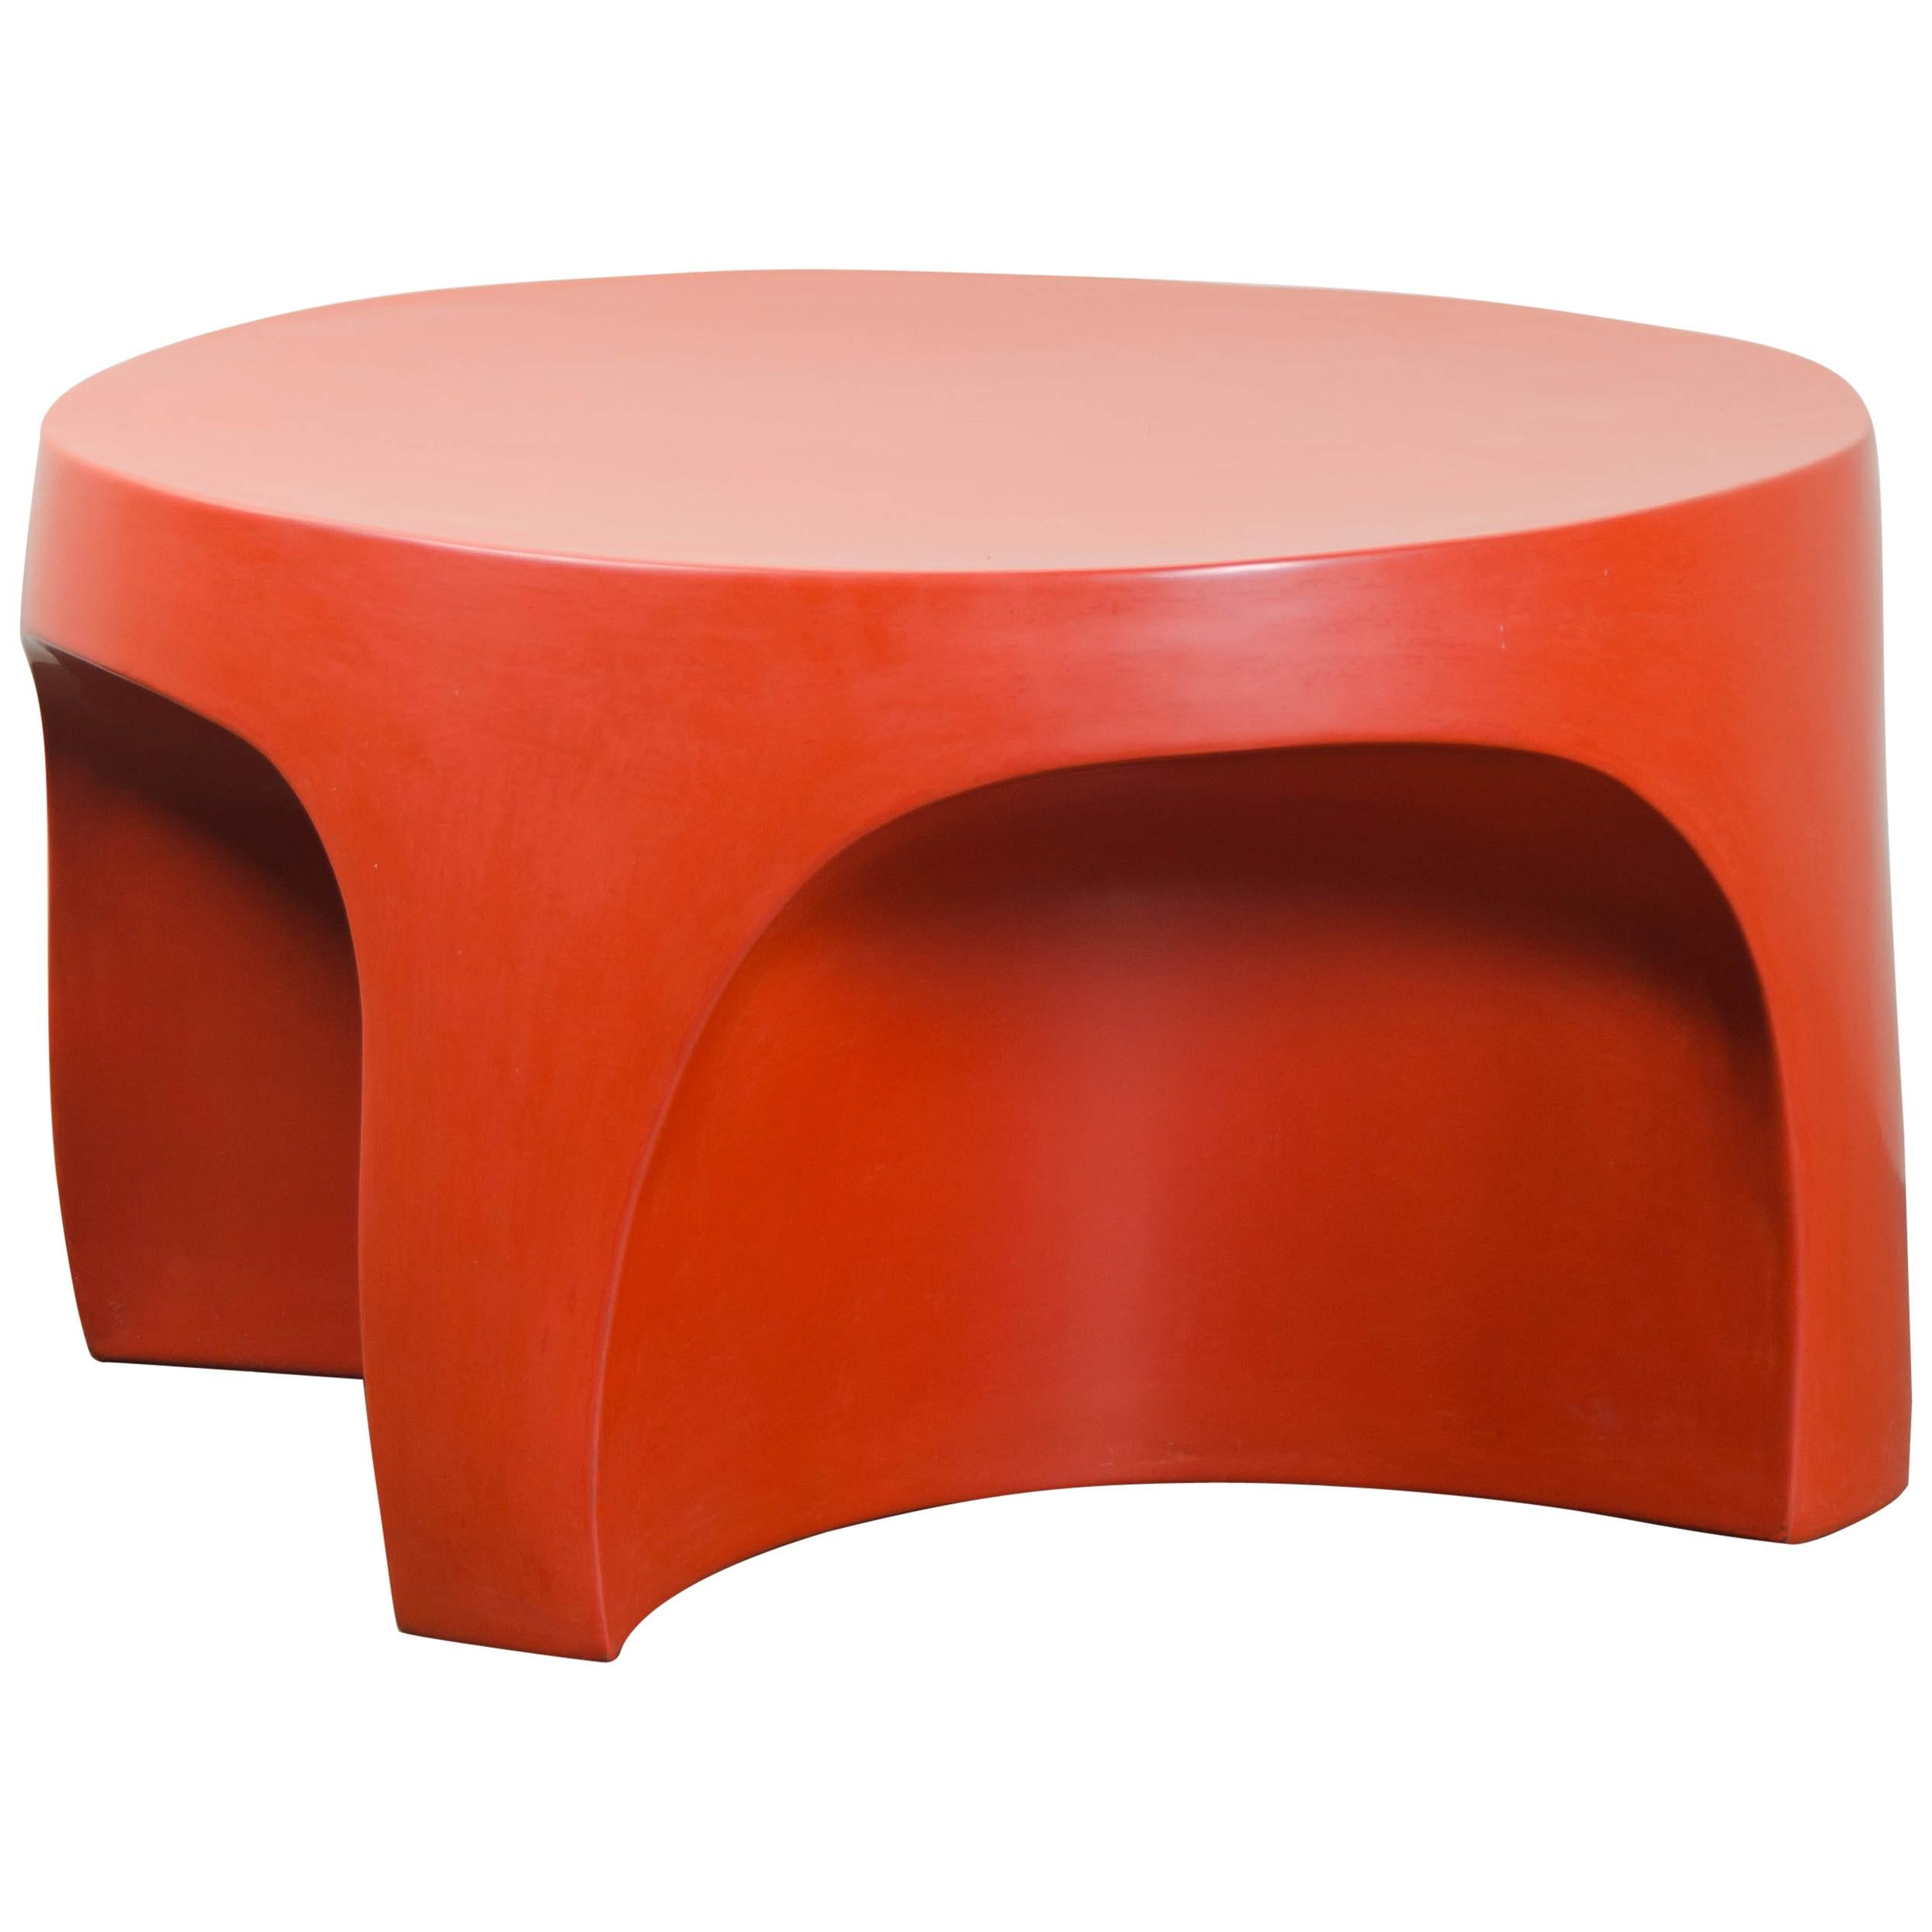 Curve Table, Coral Lacquer by Robert Kuo, Hand Repoussé, Limited Edition